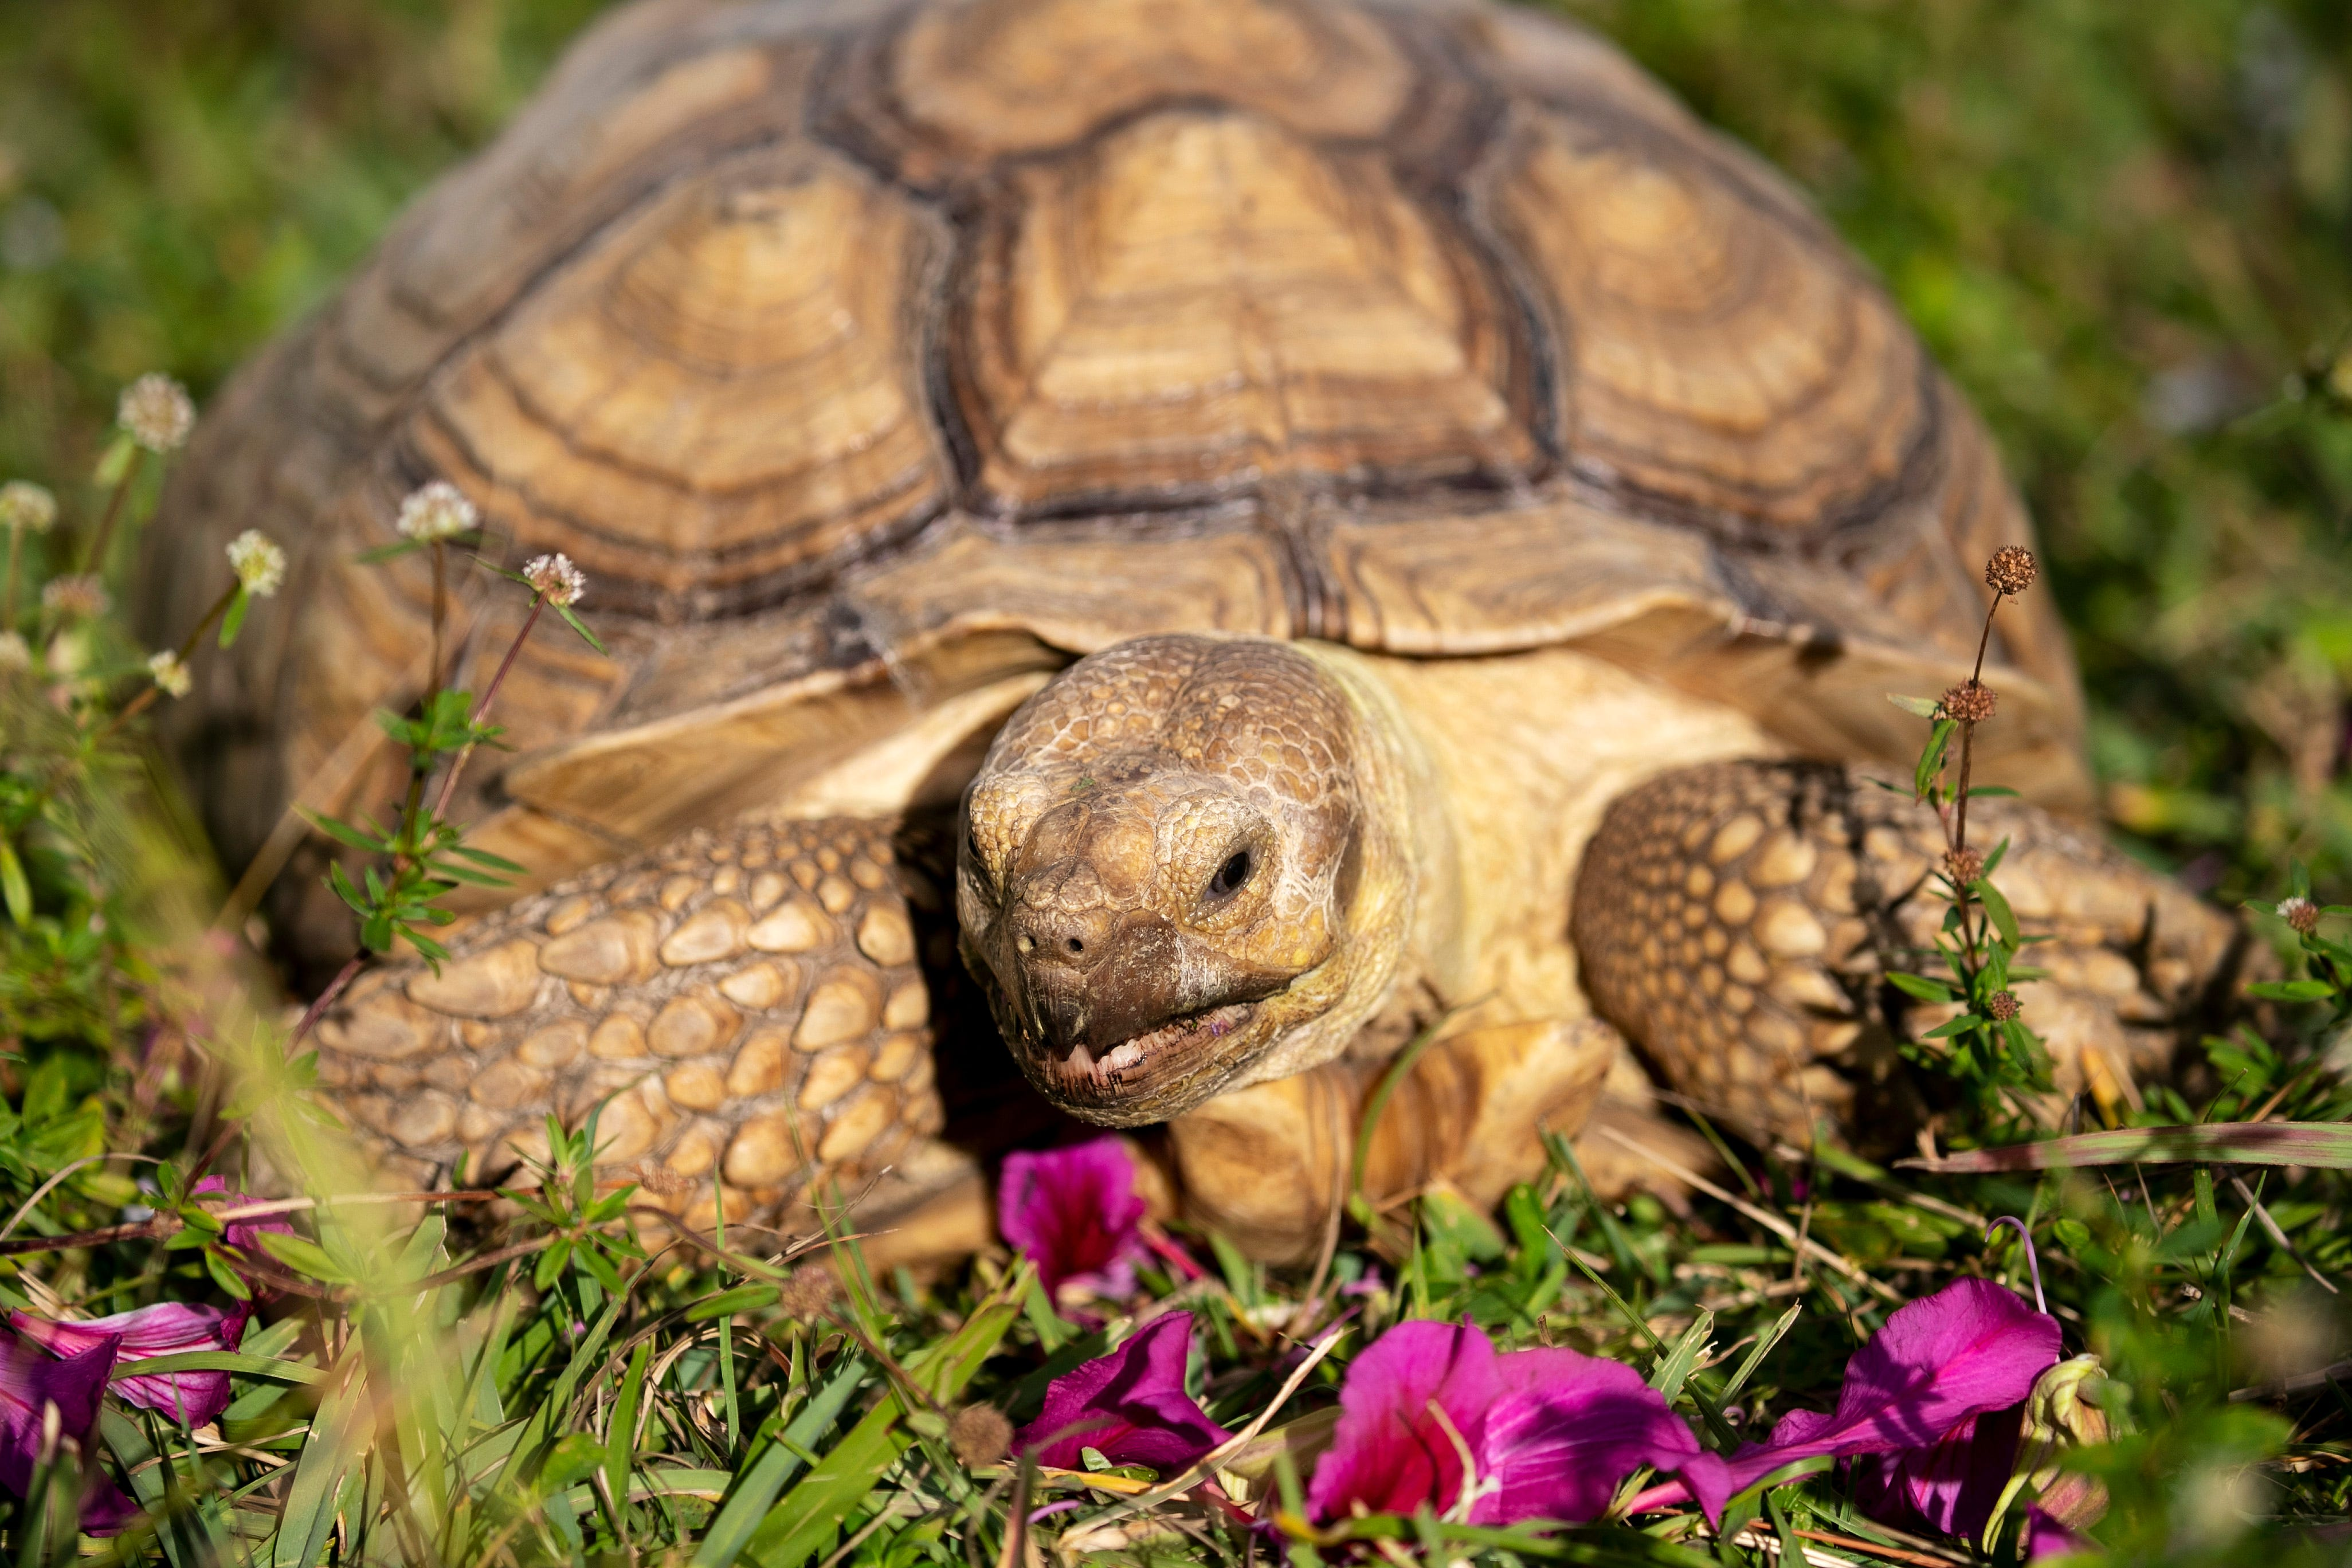 Meet Tank, the appropriately named tortoise at Adam's Animal Encounters 2